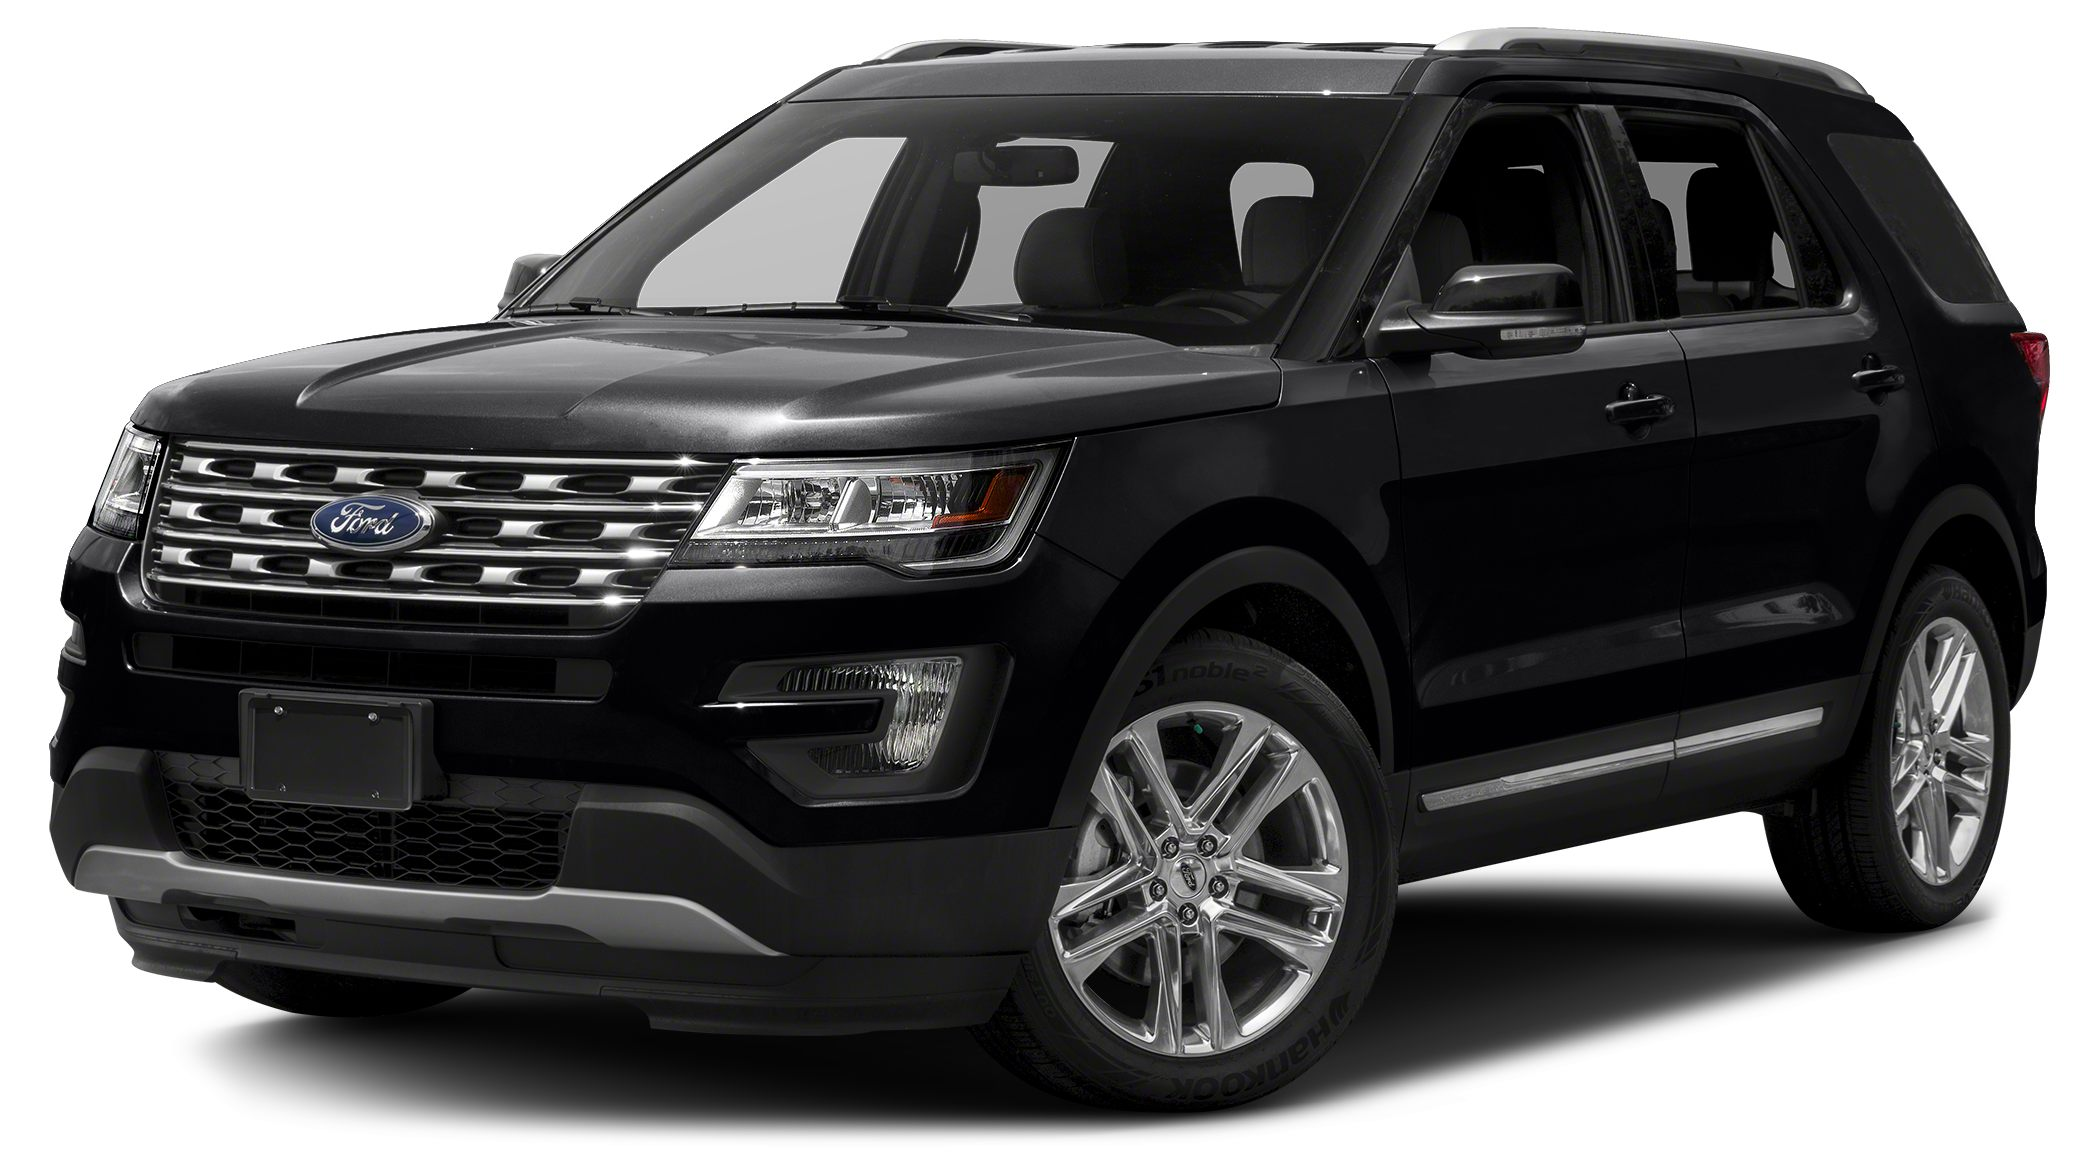 2016 Ford Explorer XLT This 2016 Ford Explorer XLT is a steal with comforts such as an MP3 player